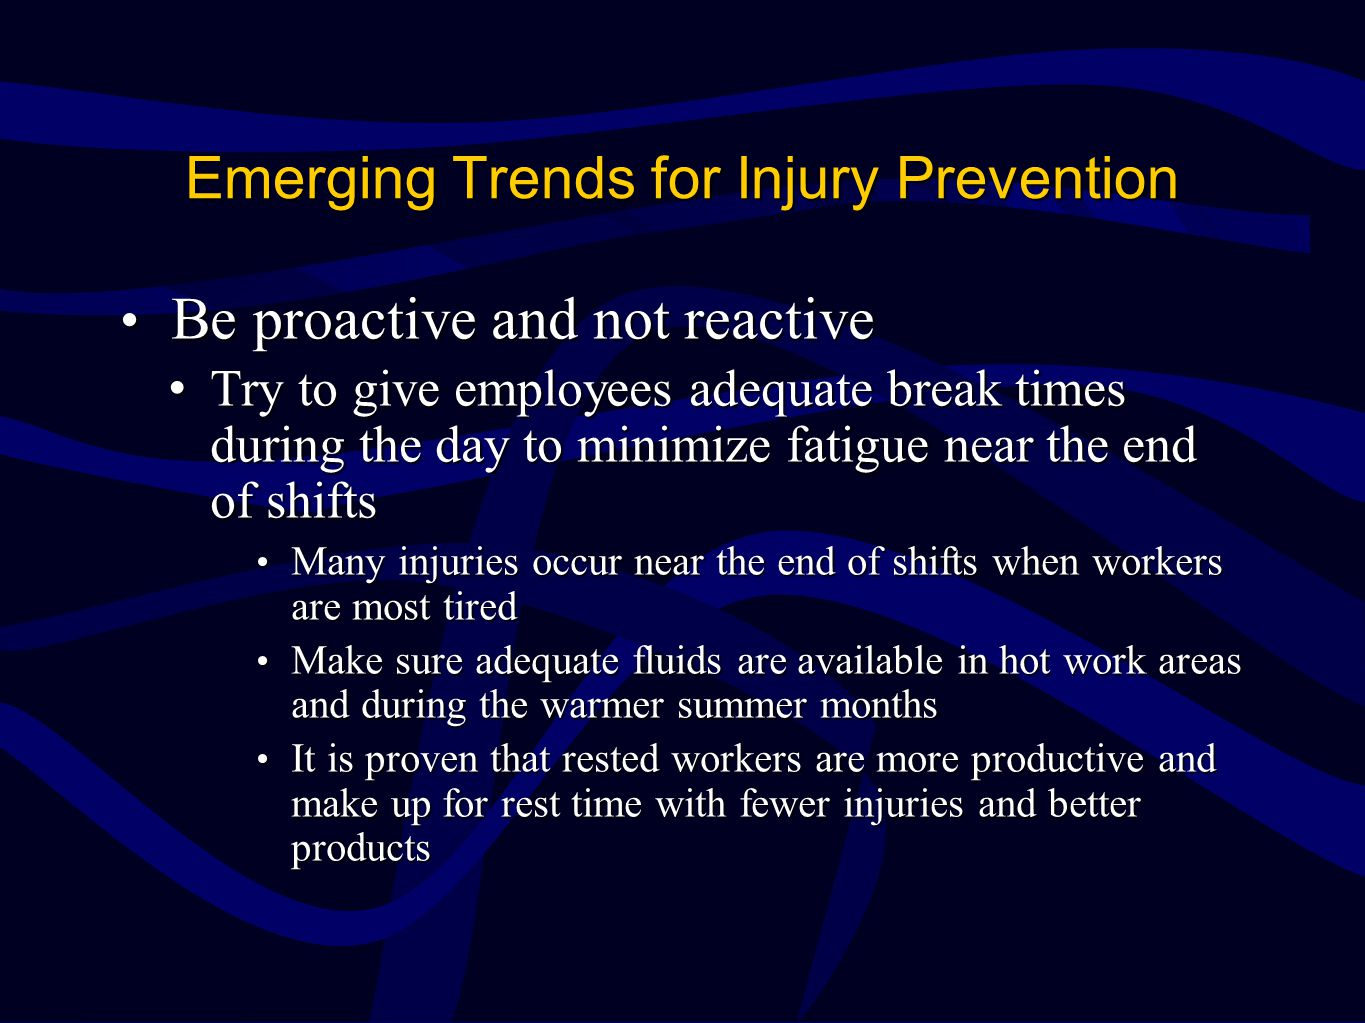 Emerging Trends for Injury Prevention Be proactive and not reactive Be proactive and not reactive Try to give employees adequate break times during the day to minimize fatigue near the end of shiftsTry to give employees adequate break times during the day to minimize fatigue near the end of shifts Many injuries occur near the end of shifts when workers are most tired Many injuries occur near the end of shifts when workers are most tired Make sure adequate fluids are available in hot work areas and during the warmer summer months Make sure adequate fluids are available in hot work areas and during the warmer summer months It is proven that rested workers are more productive and make up for rest time with fewer injuries and better products It is proven that rested workers are more productive and make up for rest time with fewer injuries and better products